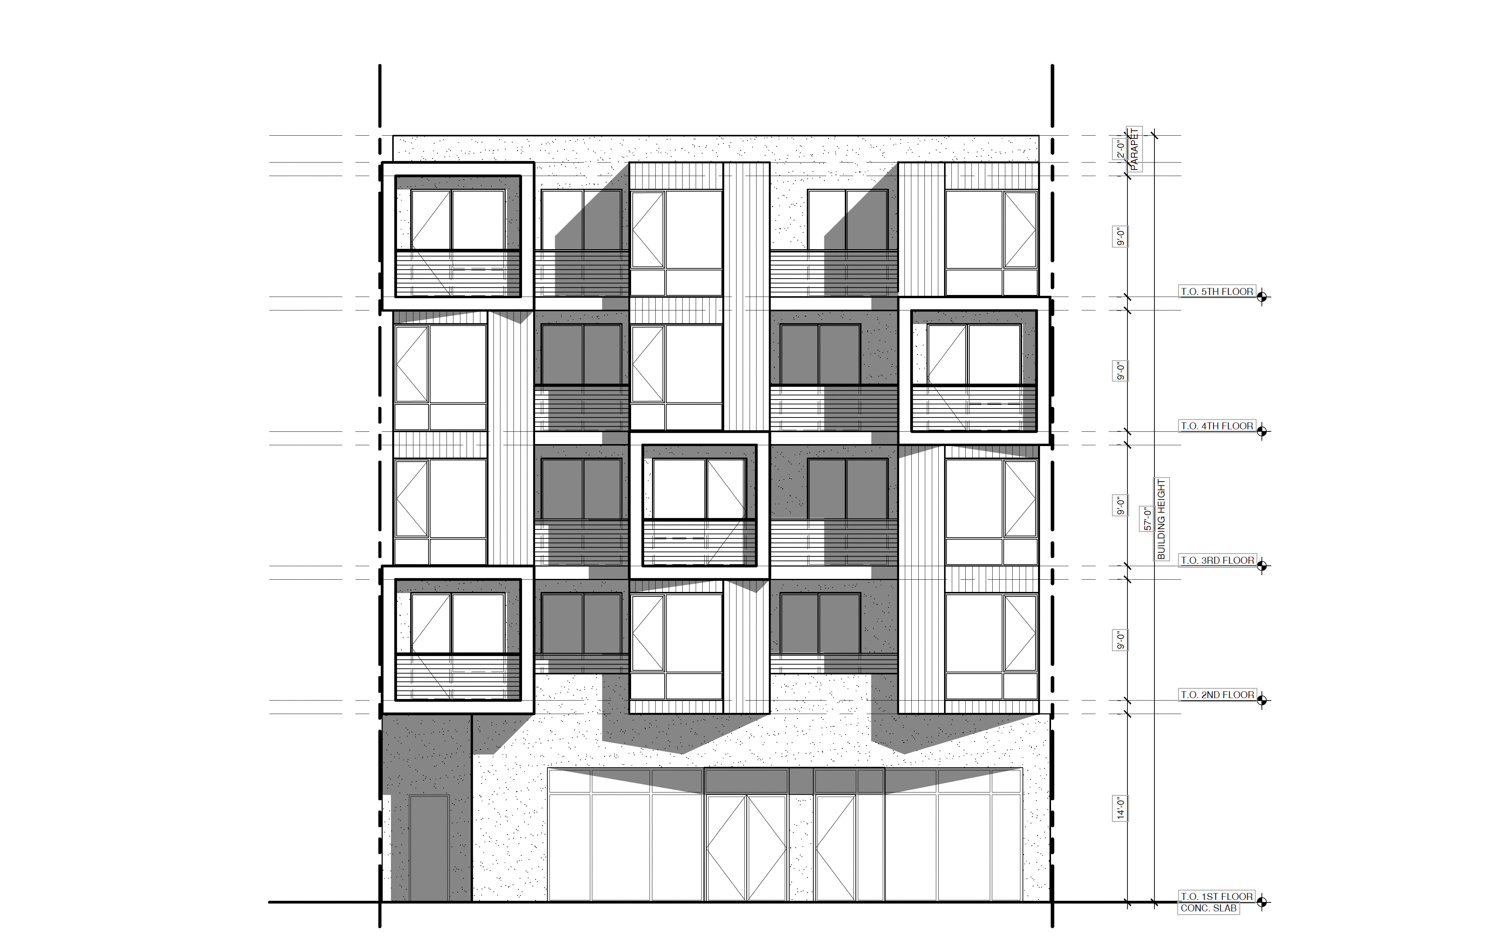 4110-4116 Geary Boulevard southern elevation, design by Derrick T. Wu Architect